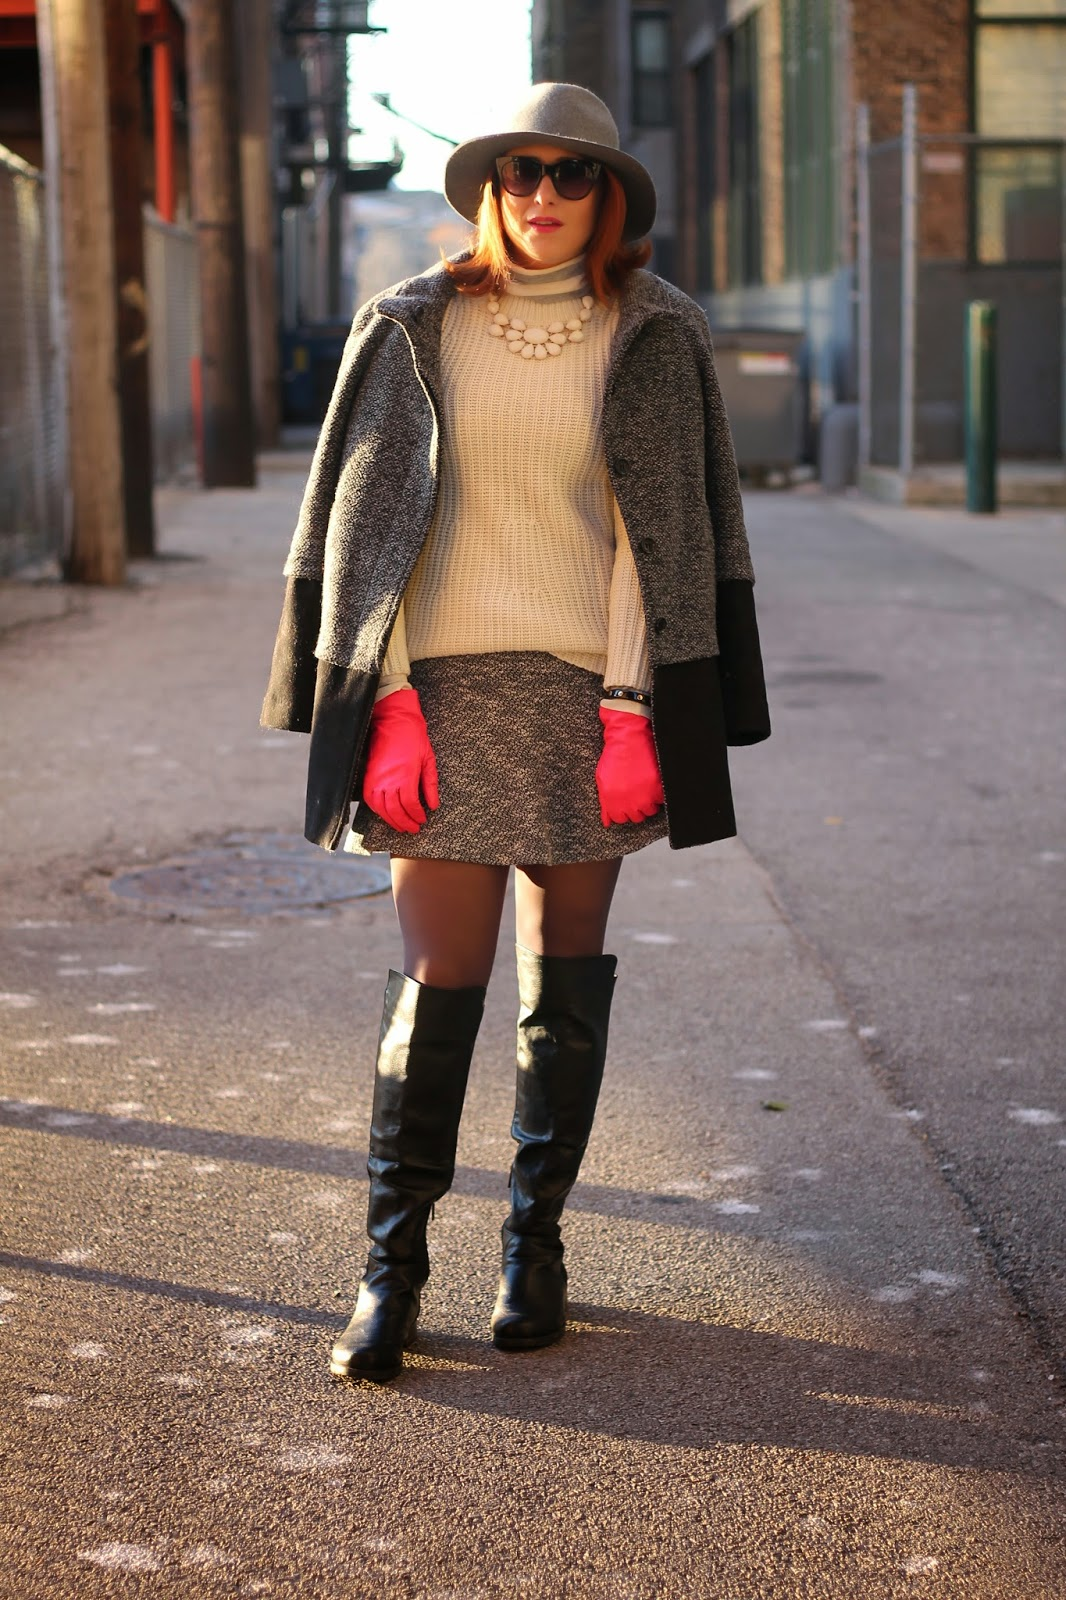 loft, flippy, skirt, sole, society, hat, pink, gloves